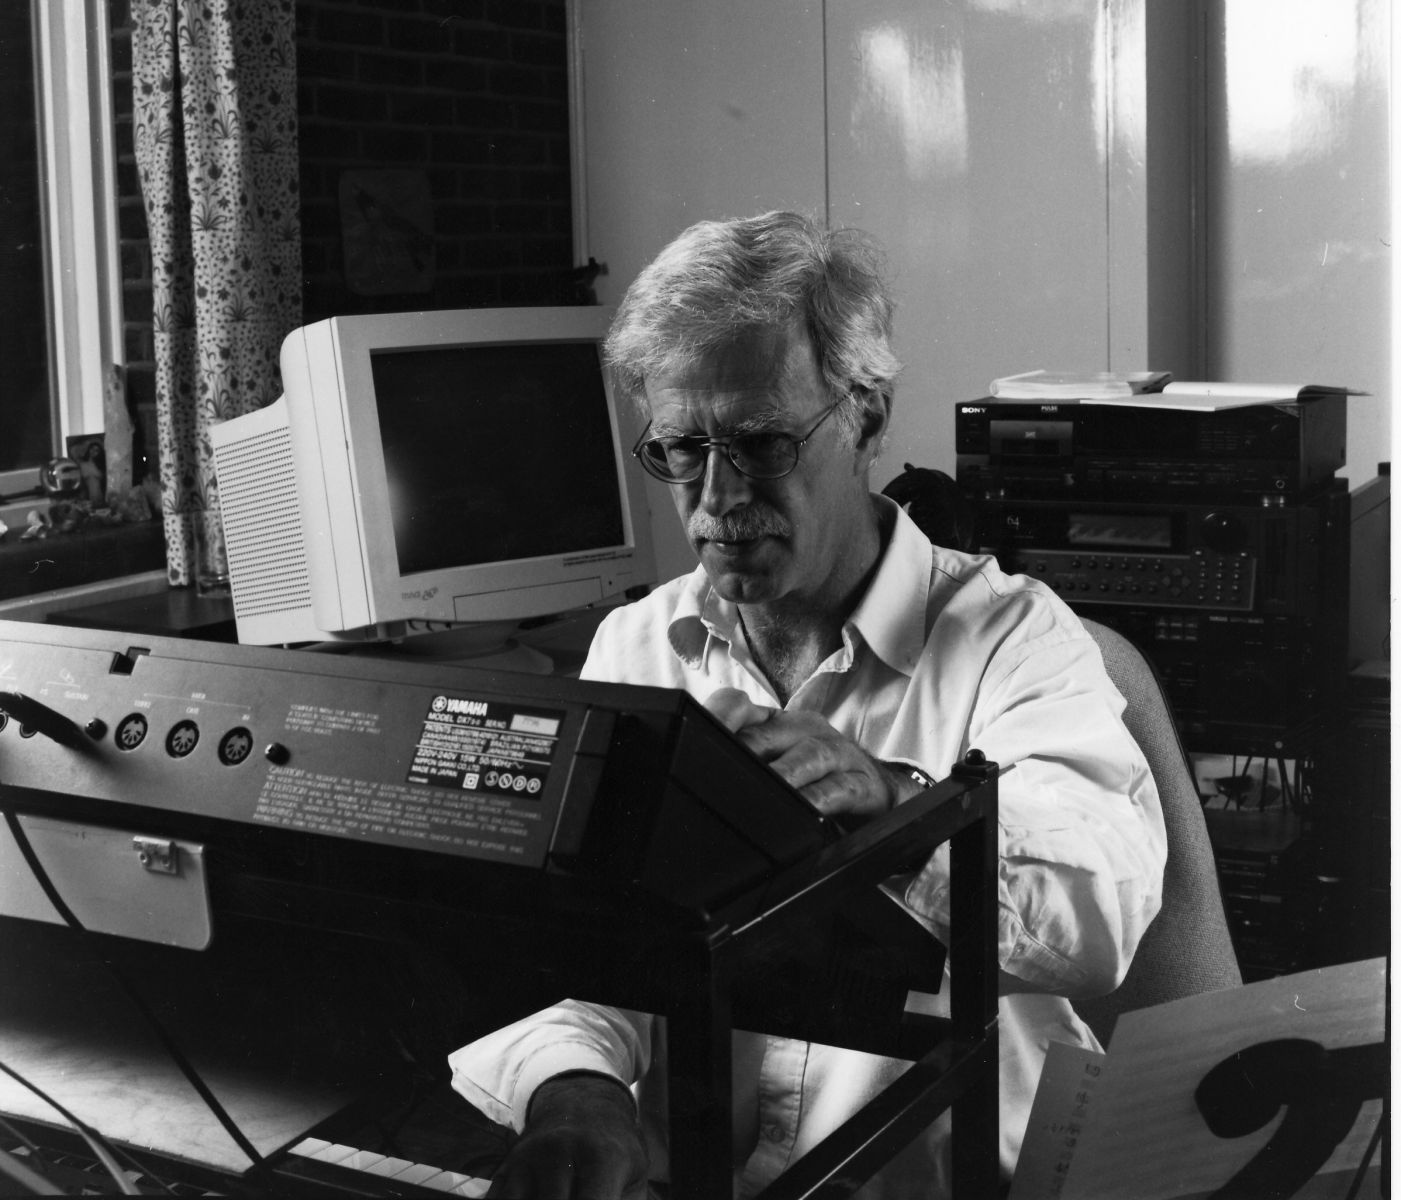 Professor Jonathan Harvey working in his office, sat at a keyboard